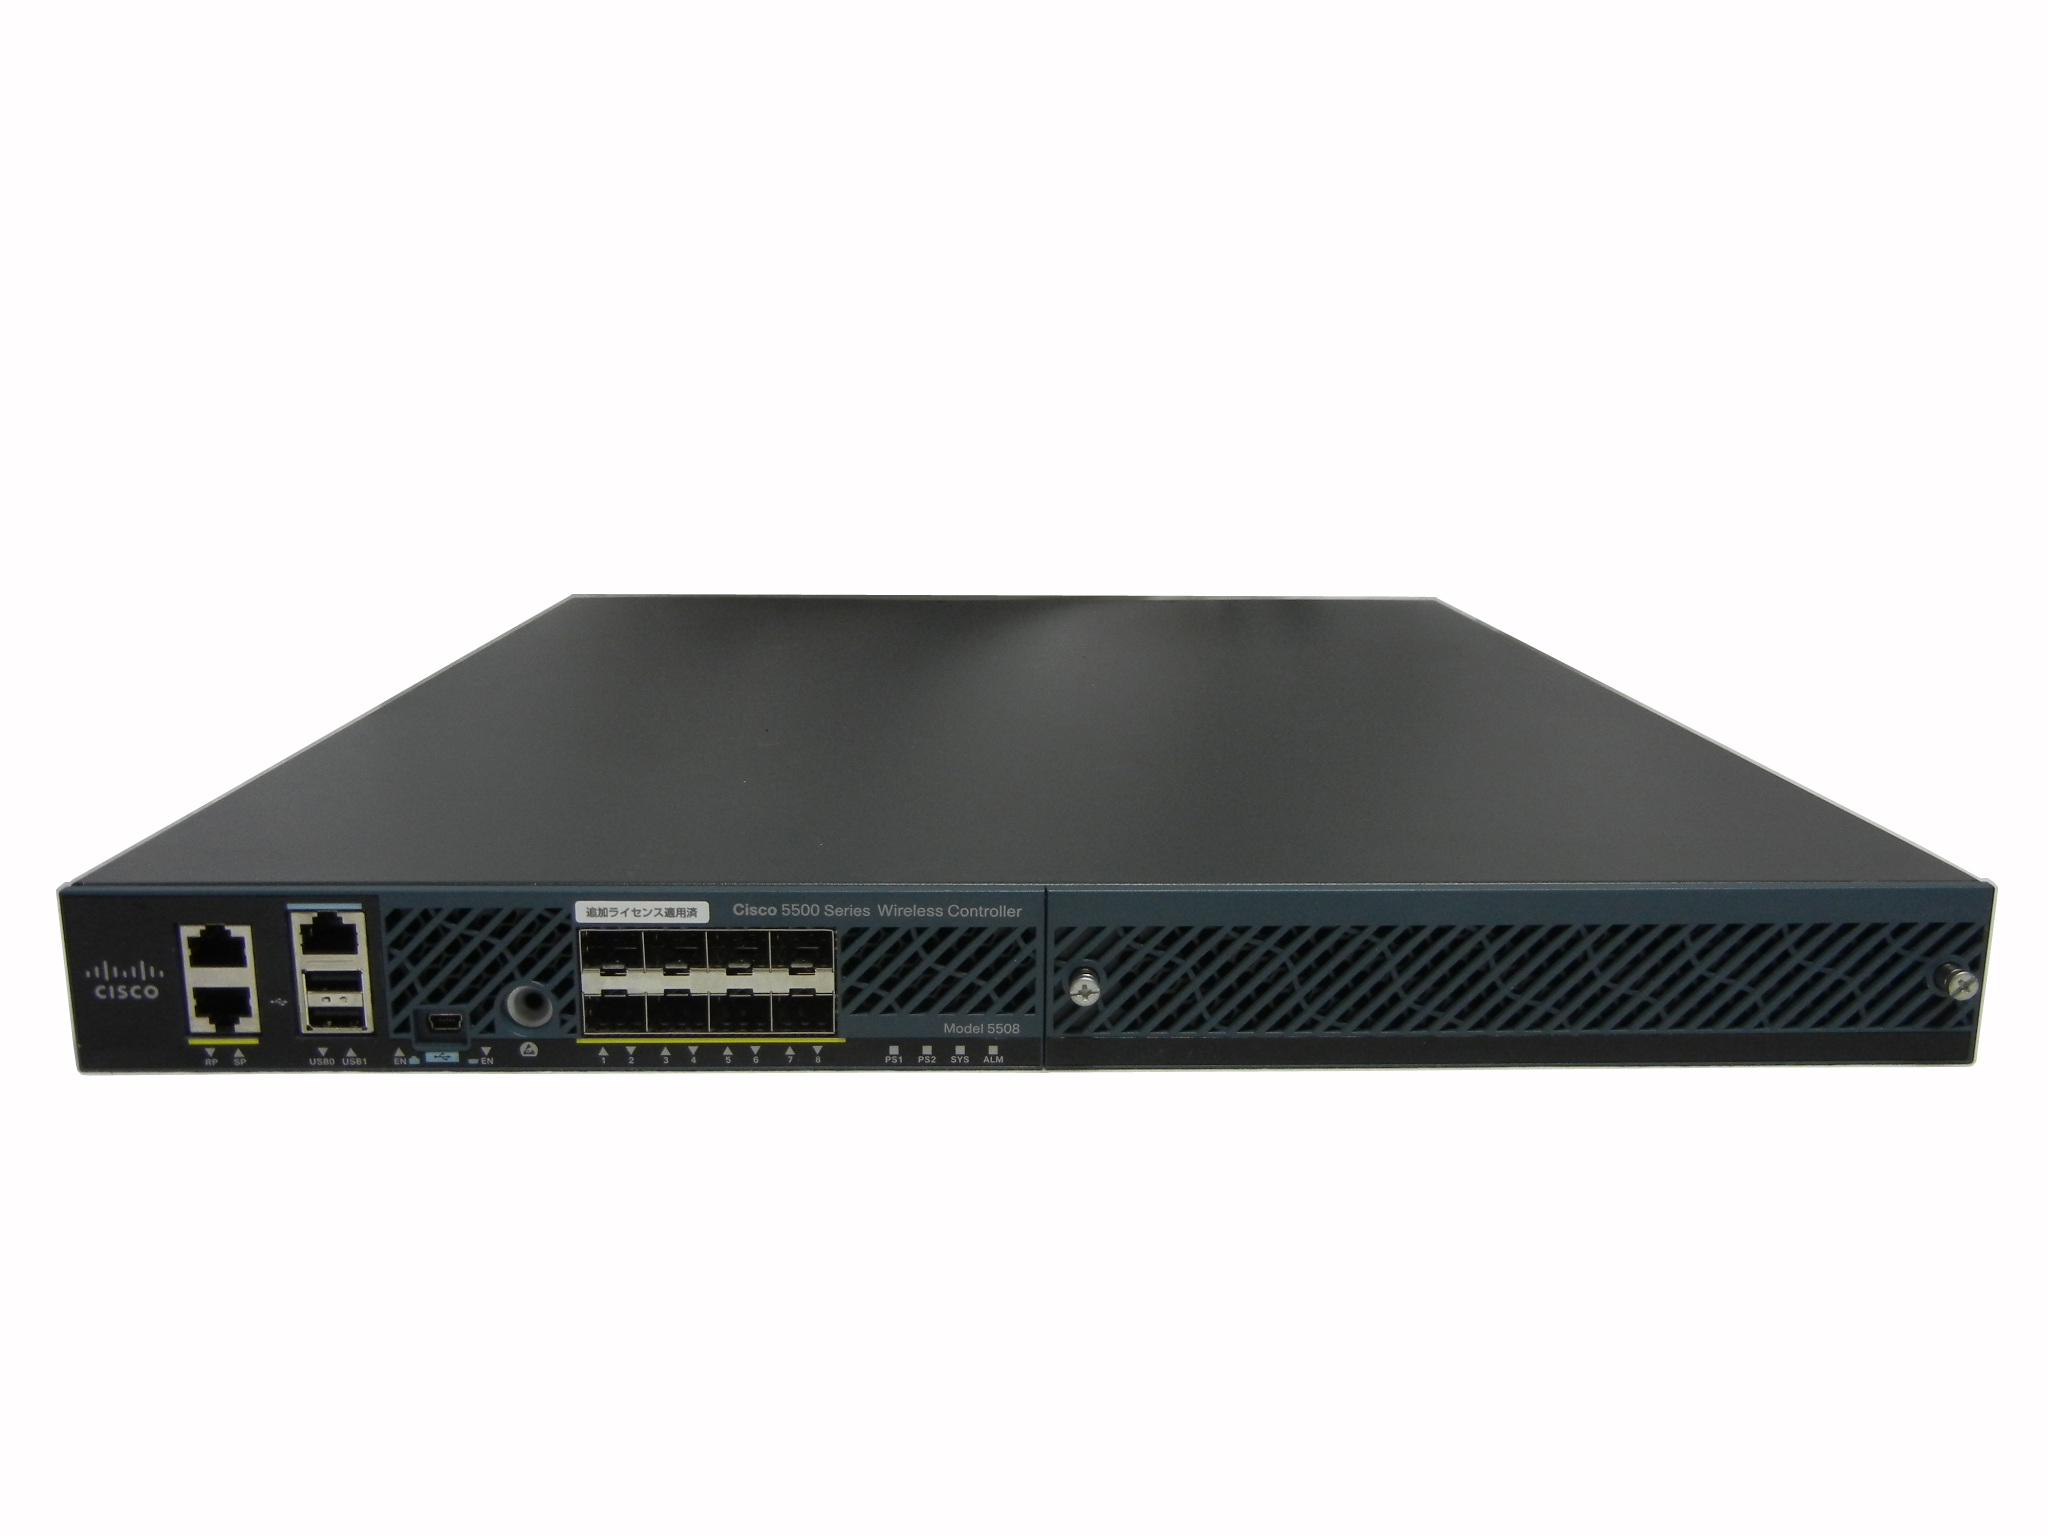 【中古】Cisco AIR-CT5508-100-K9